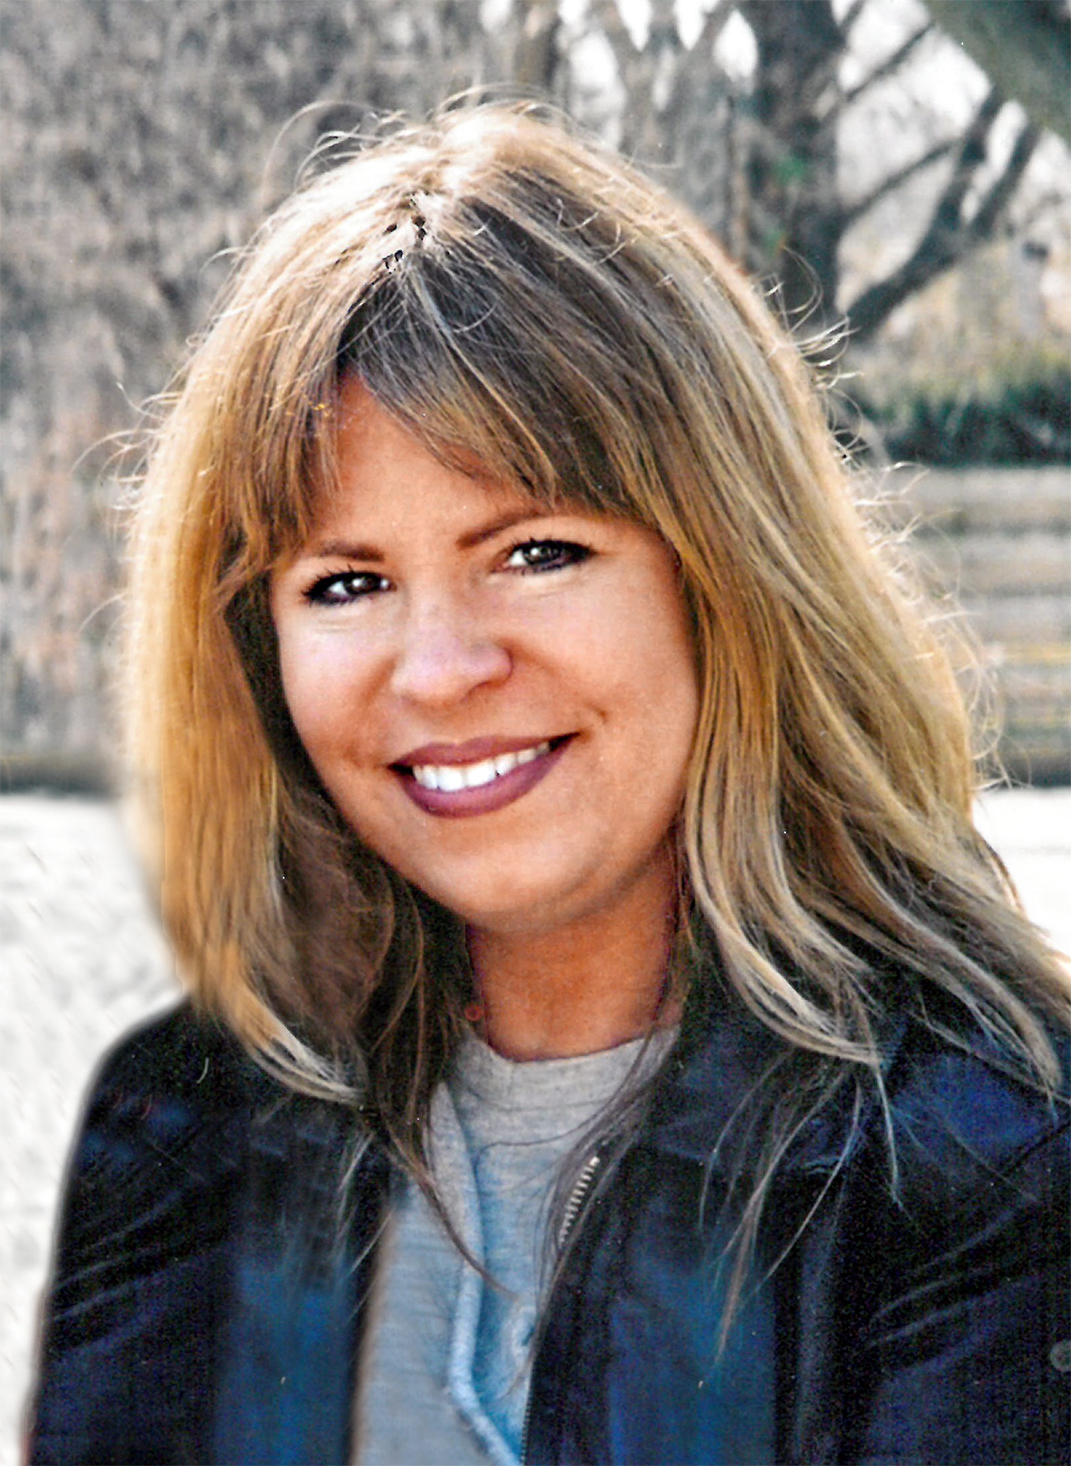 Obituary: Peggy Ann Heck Was An Animal Rescue Advocate